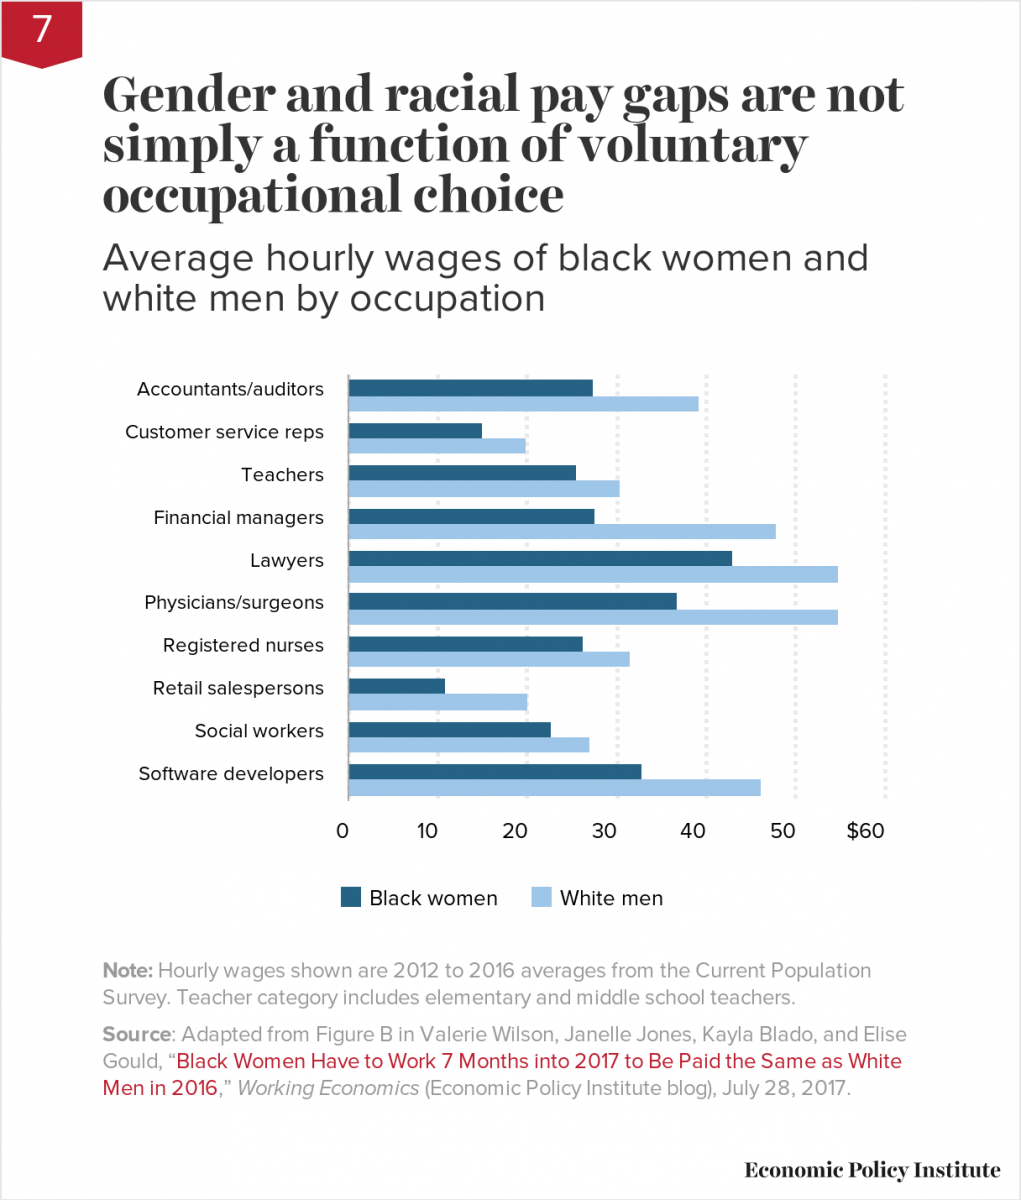 Gender and racial pay gaps are not simply a function of voluntary occupational choice